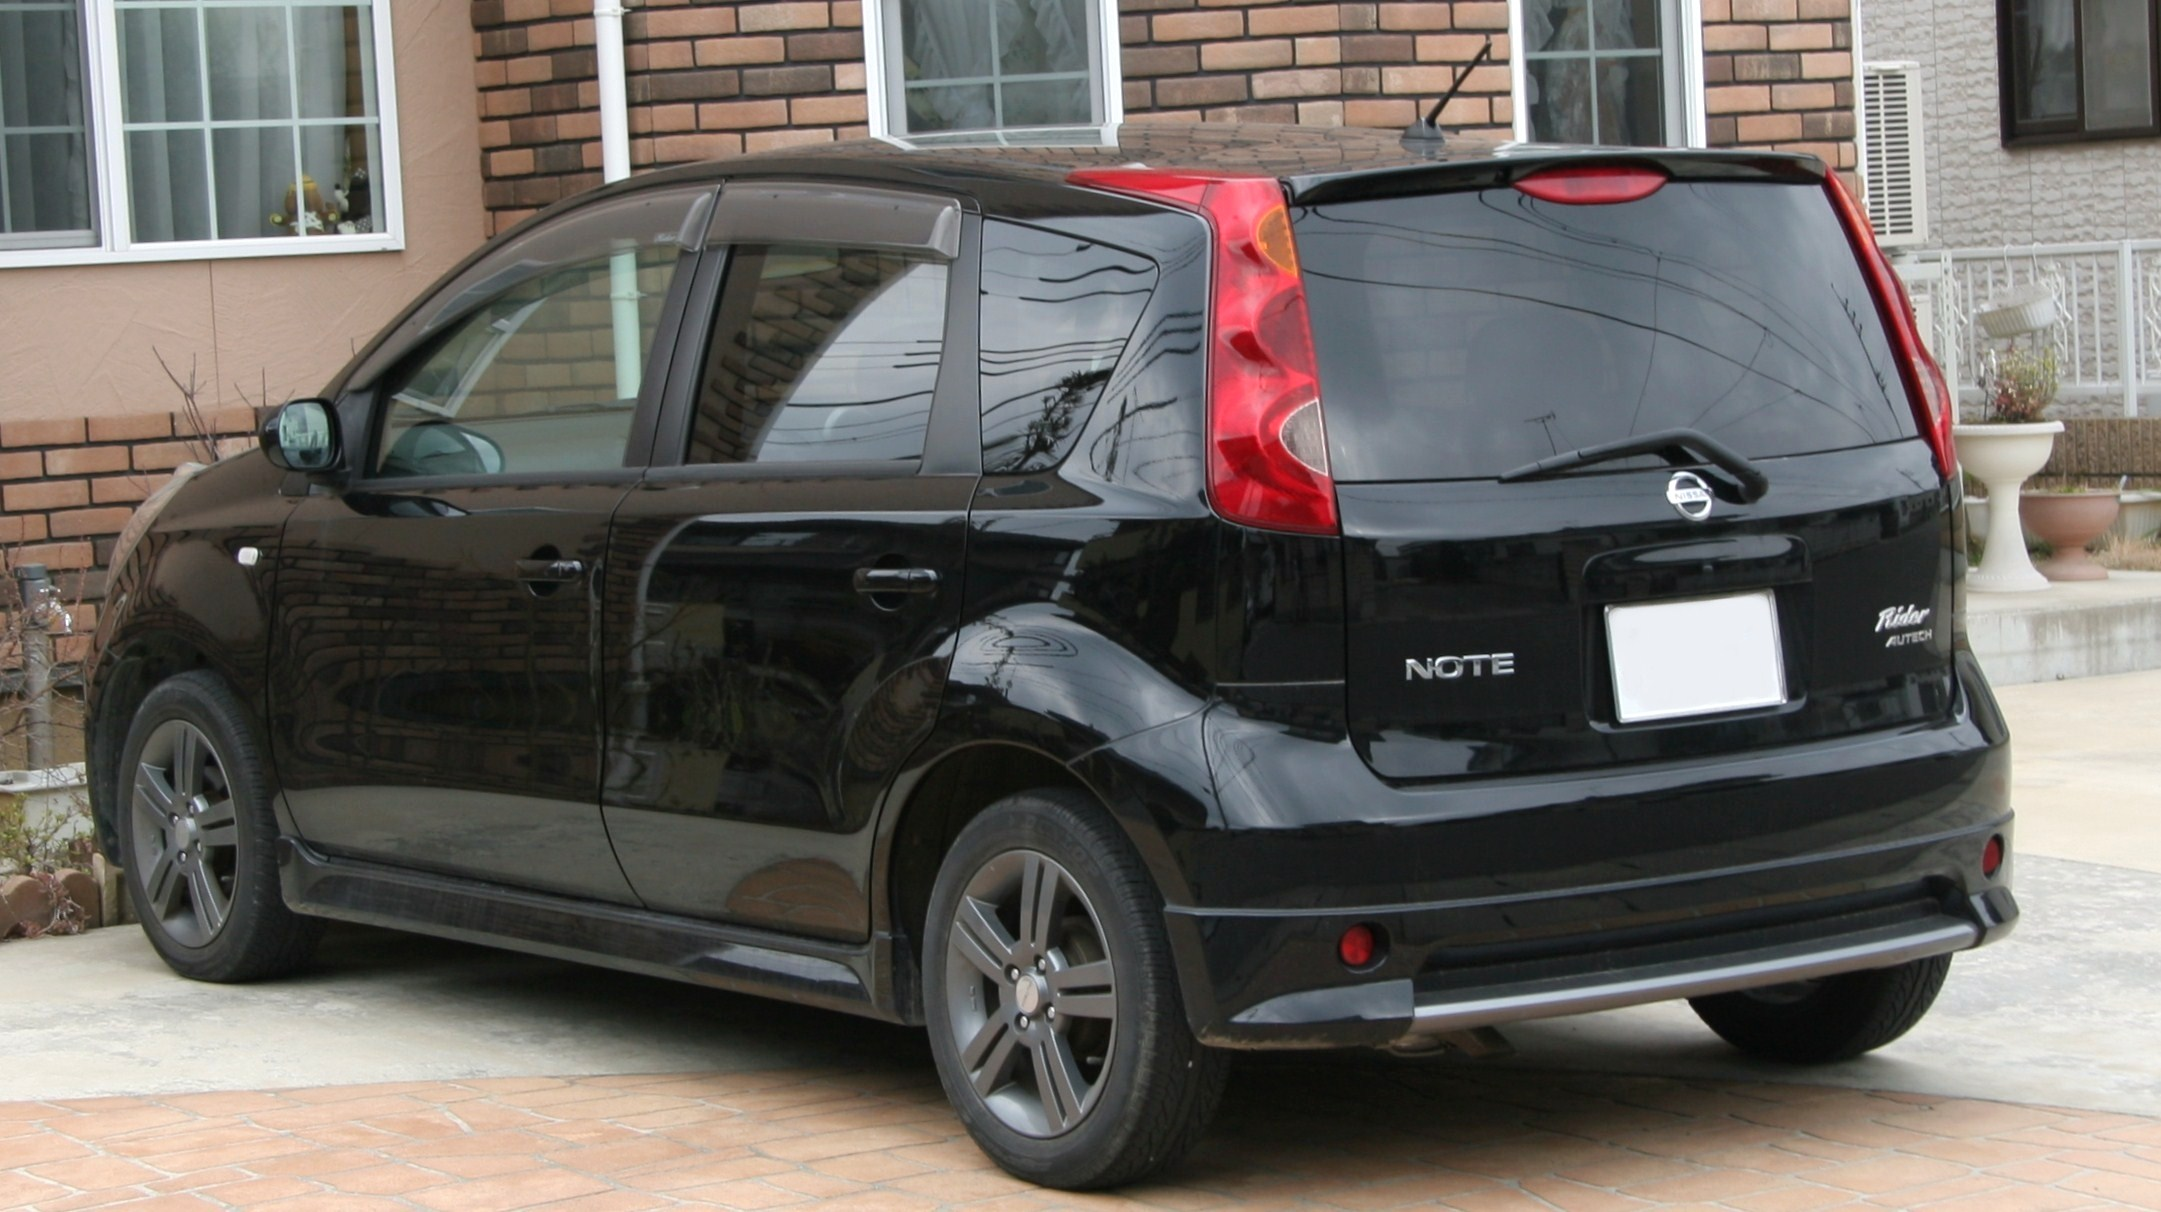 Nissan Note 2008 photo - 1